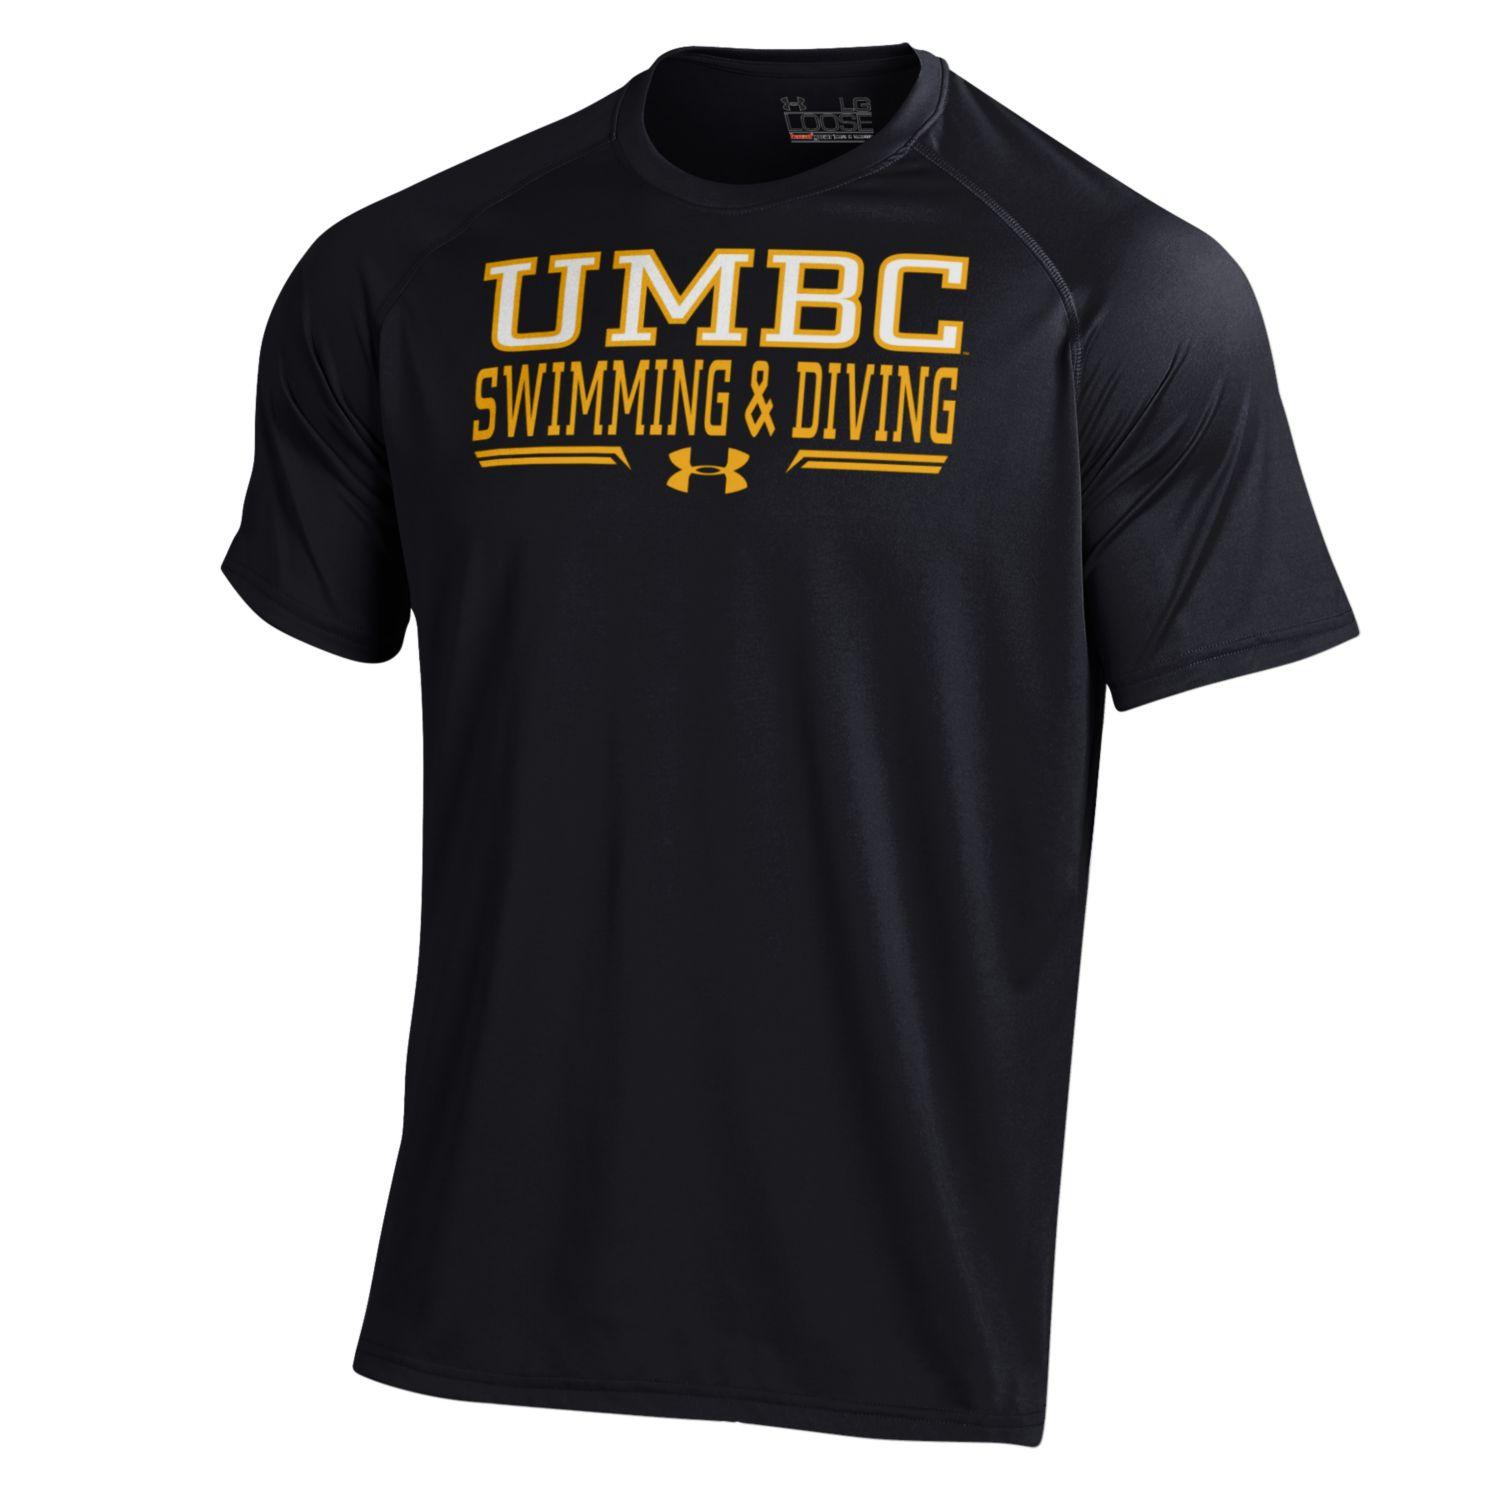 Swimming diving t shirt under armour umbc bookstore for Under armour swim shirt youth